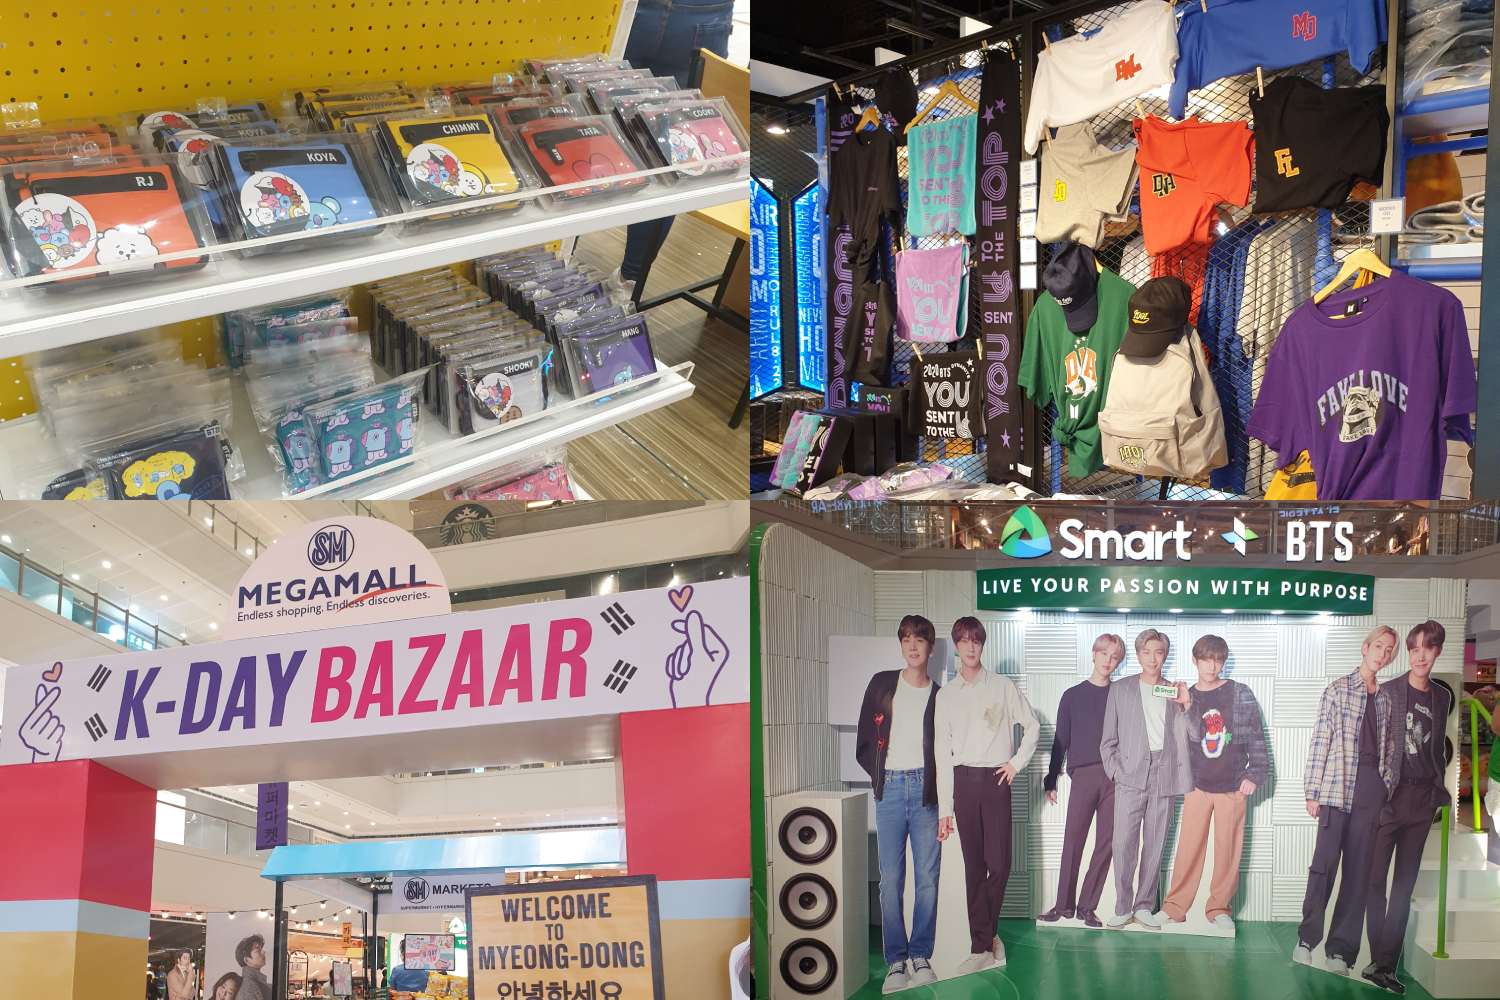 Have a great BTS day at the SM Megamall Korean Festival